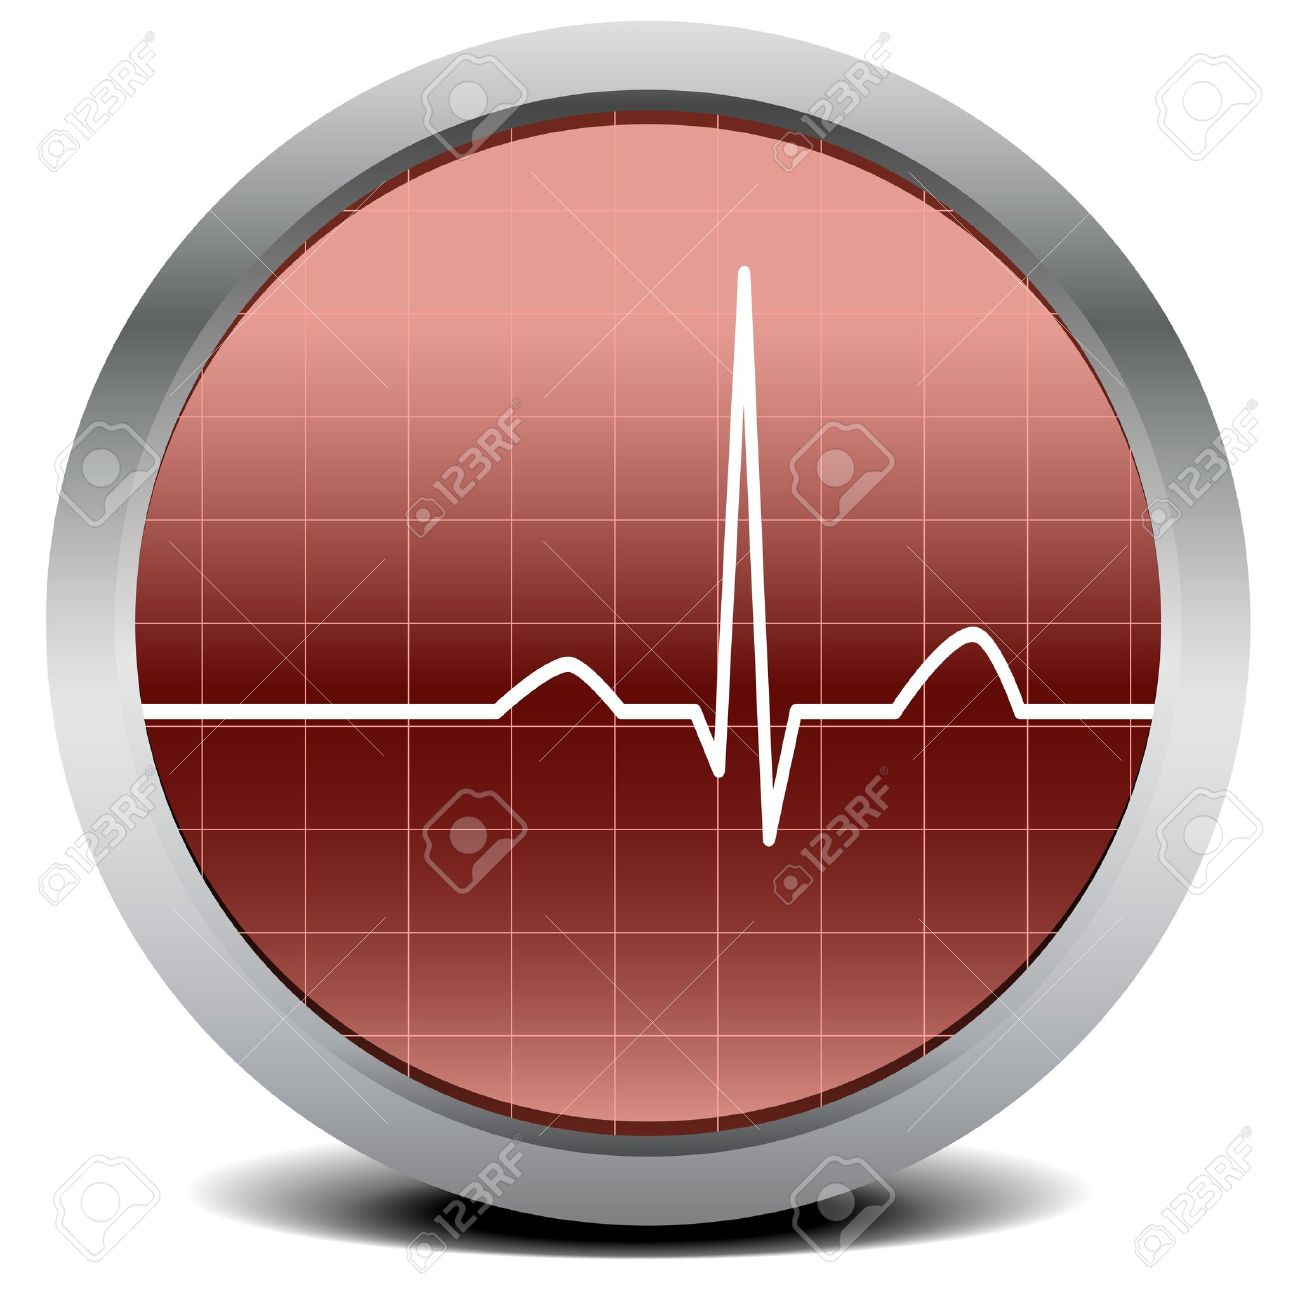 illustration of a round heart beat monitor with signal Stock Vector - 13496393